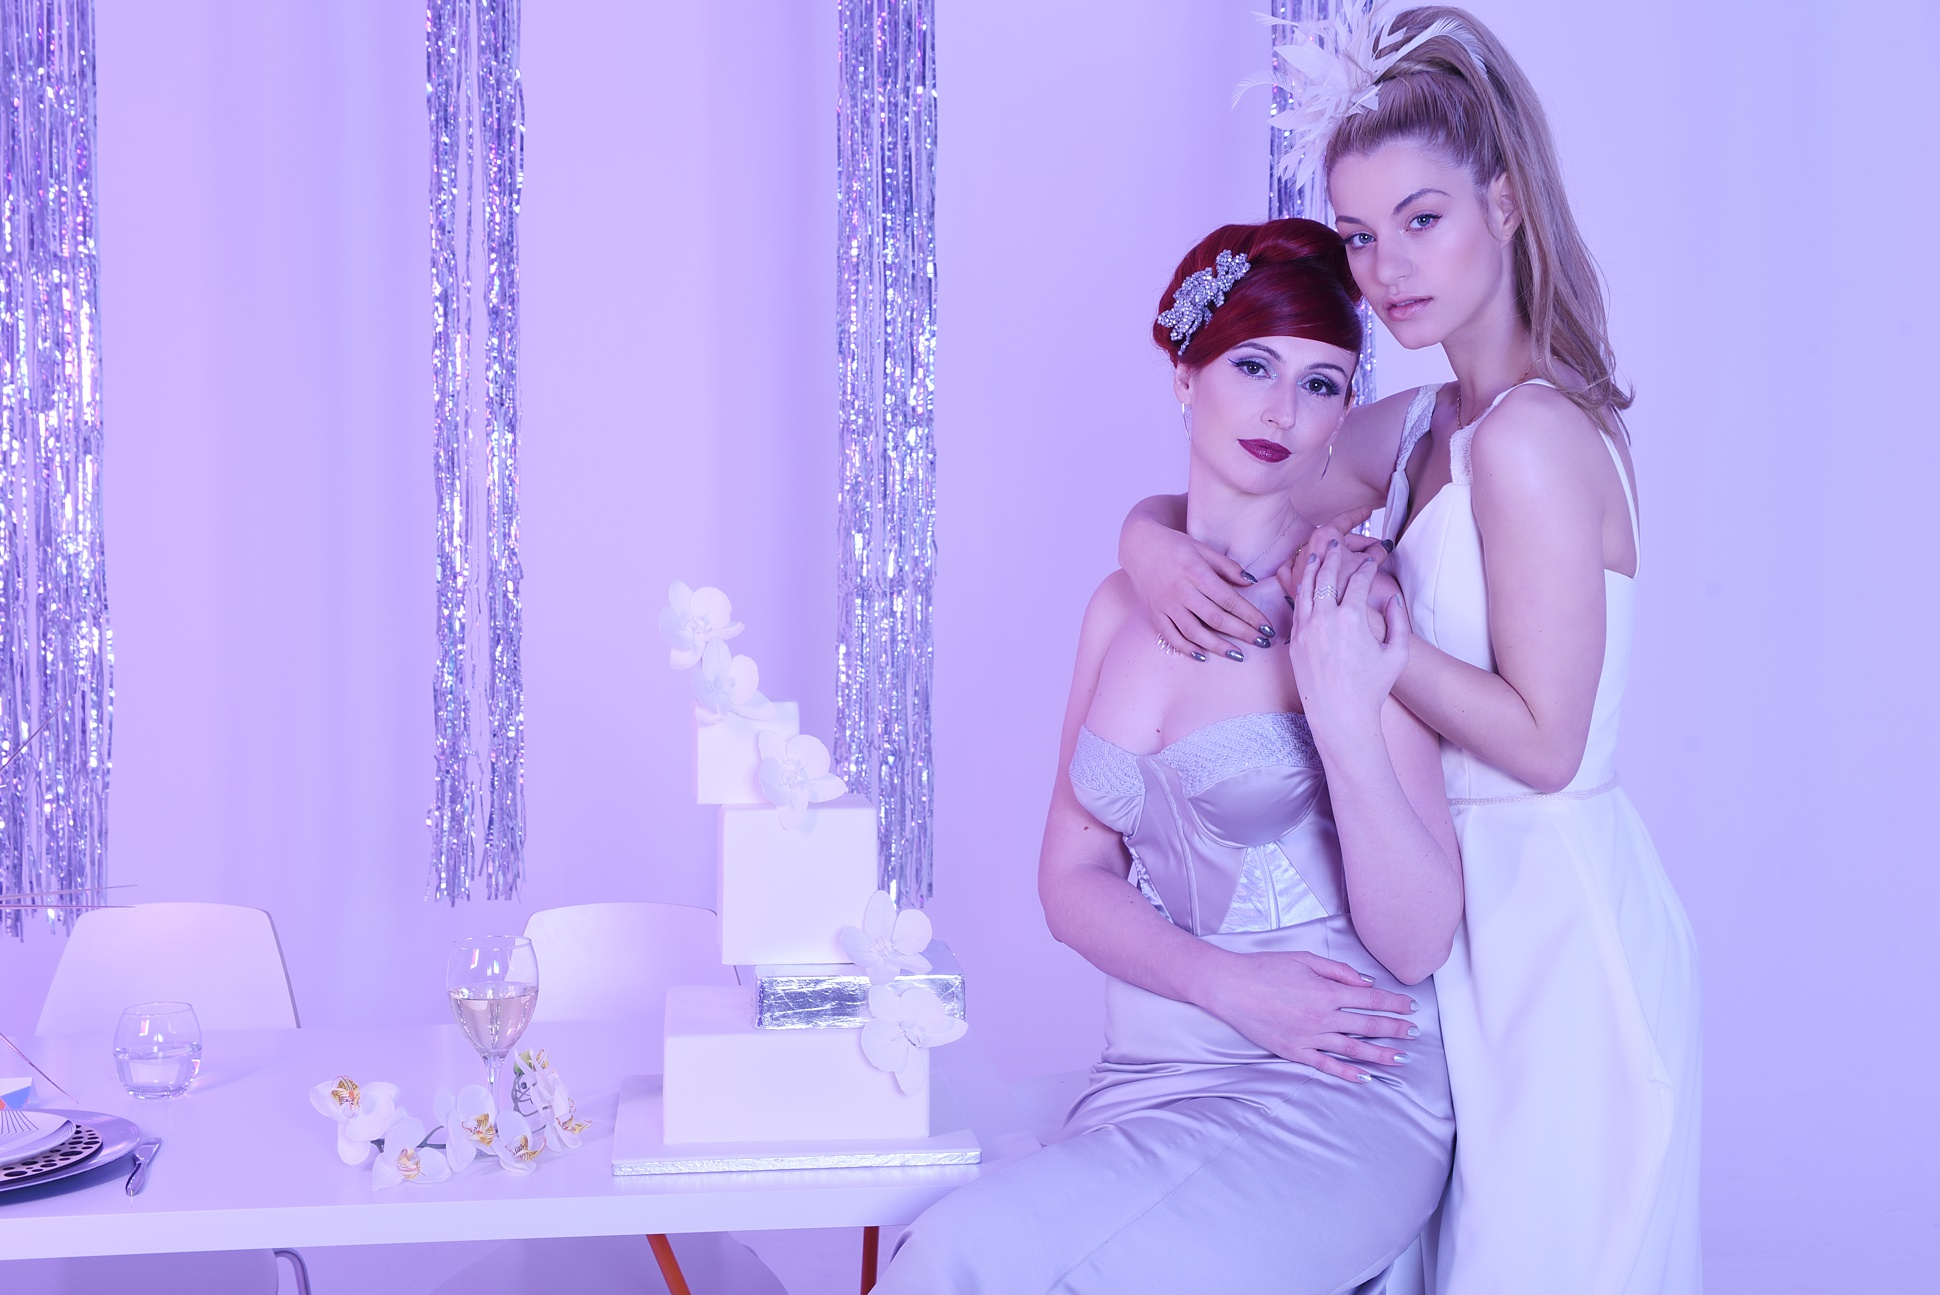 Icetank, futuristic fantasy, same sex brides / Photos by Emma Jane Photography / Styled by Way Out Wedding & Carmela Weddings / As featured on www.mrandmrsunique.co.uk